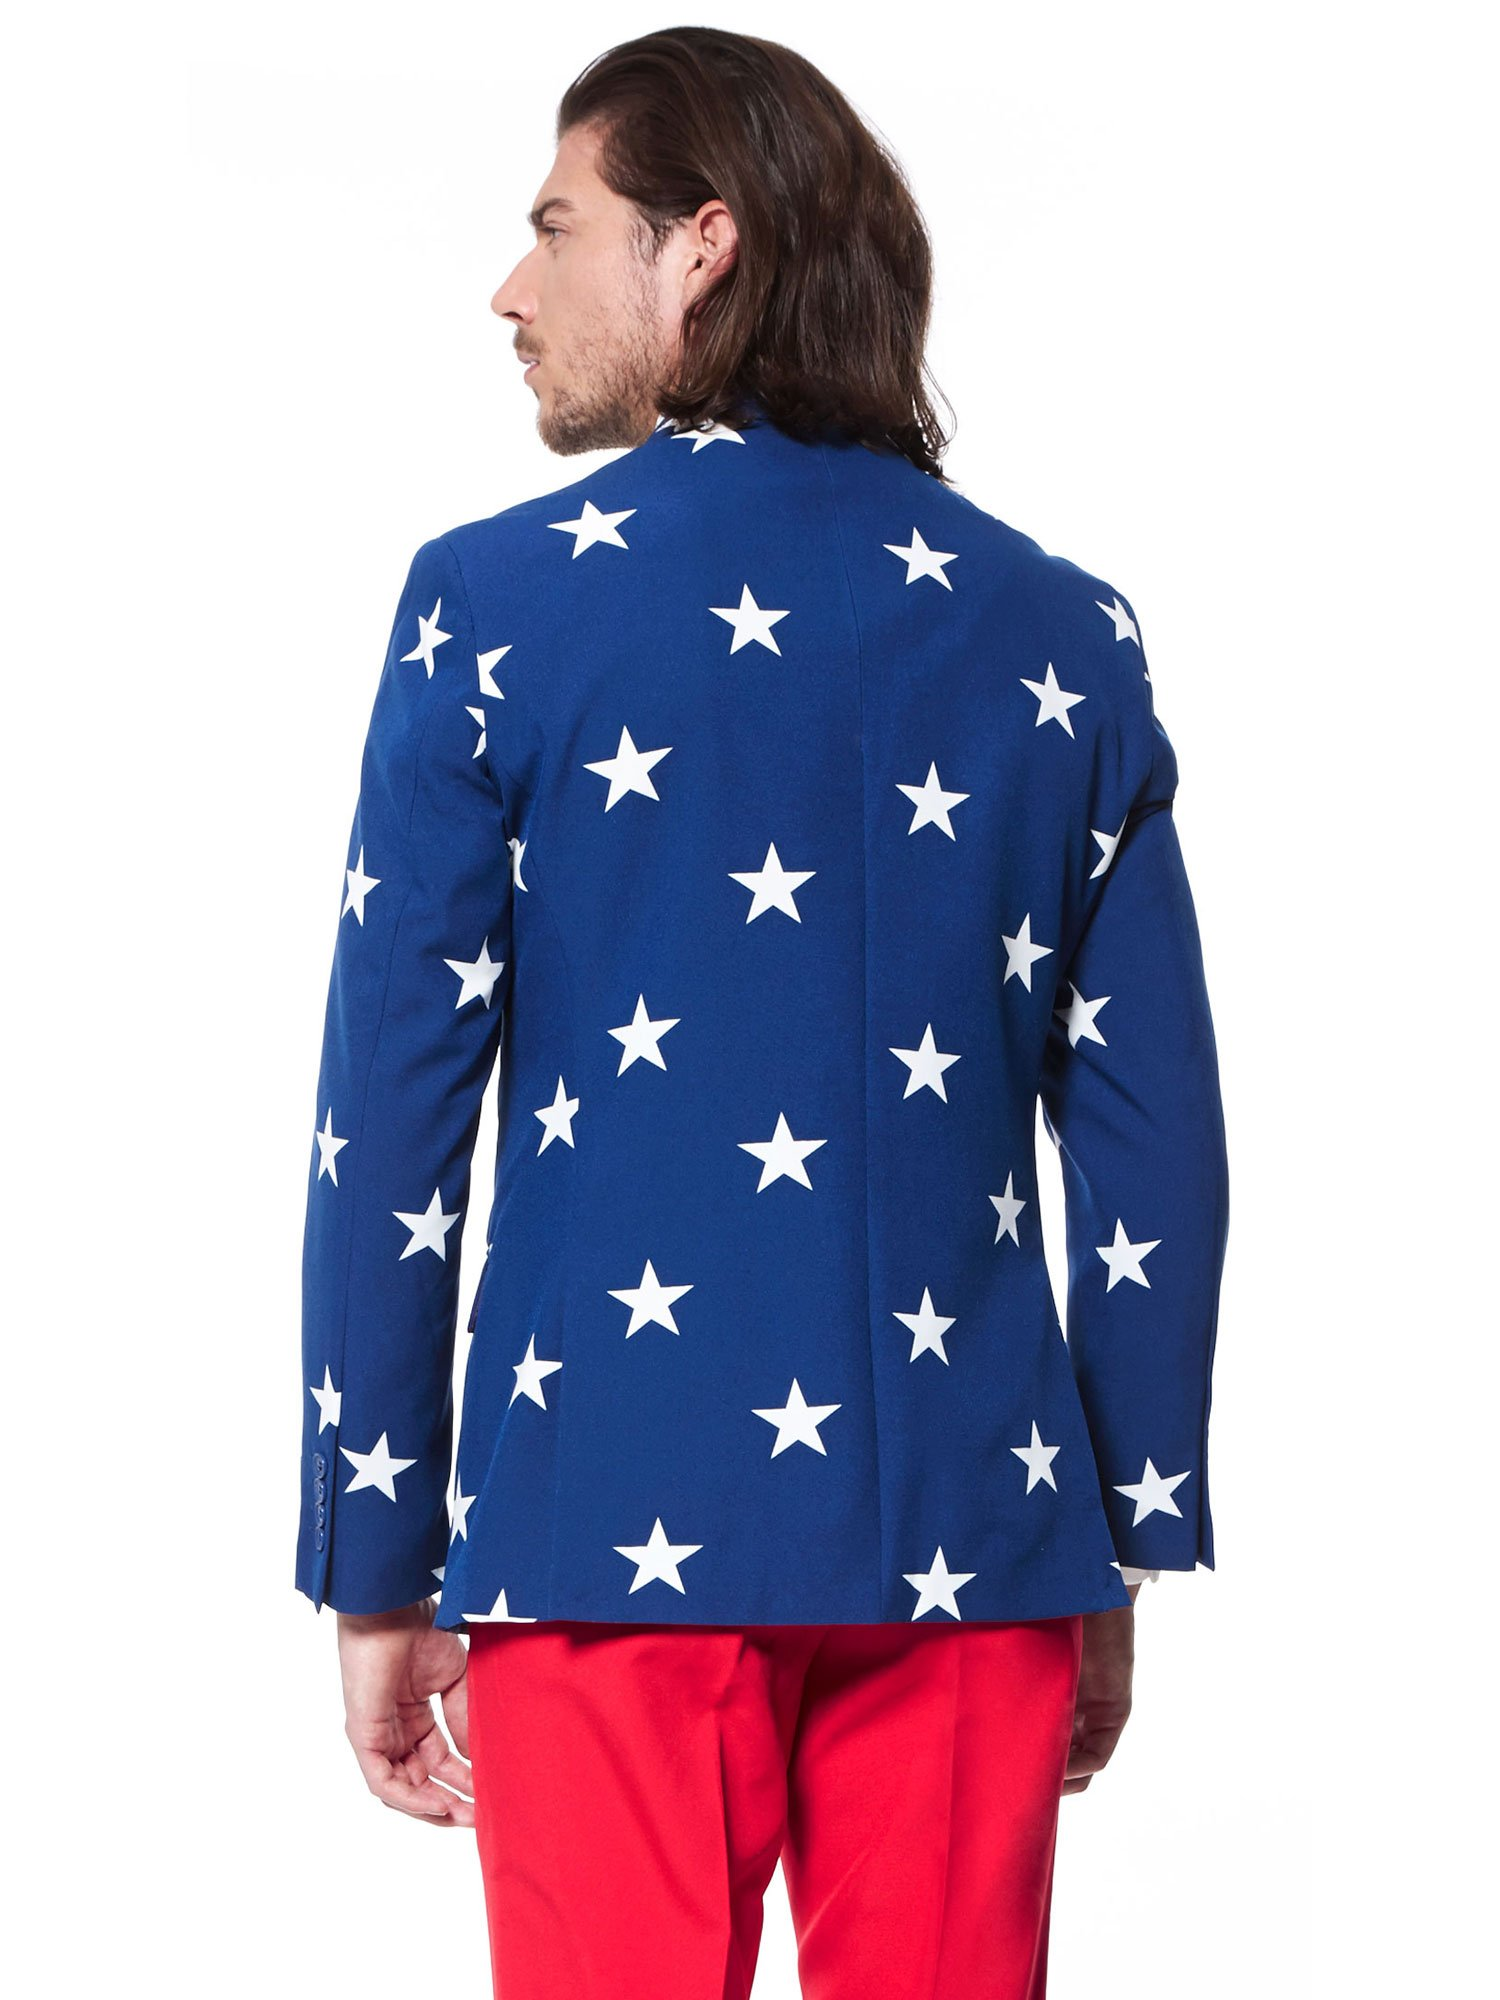 Opposuits Fancy Colored Suit For Men Now With Free Prom King and Prom Queen Sash,Stars and Stripes,US40 by Opposuits (Image #2)